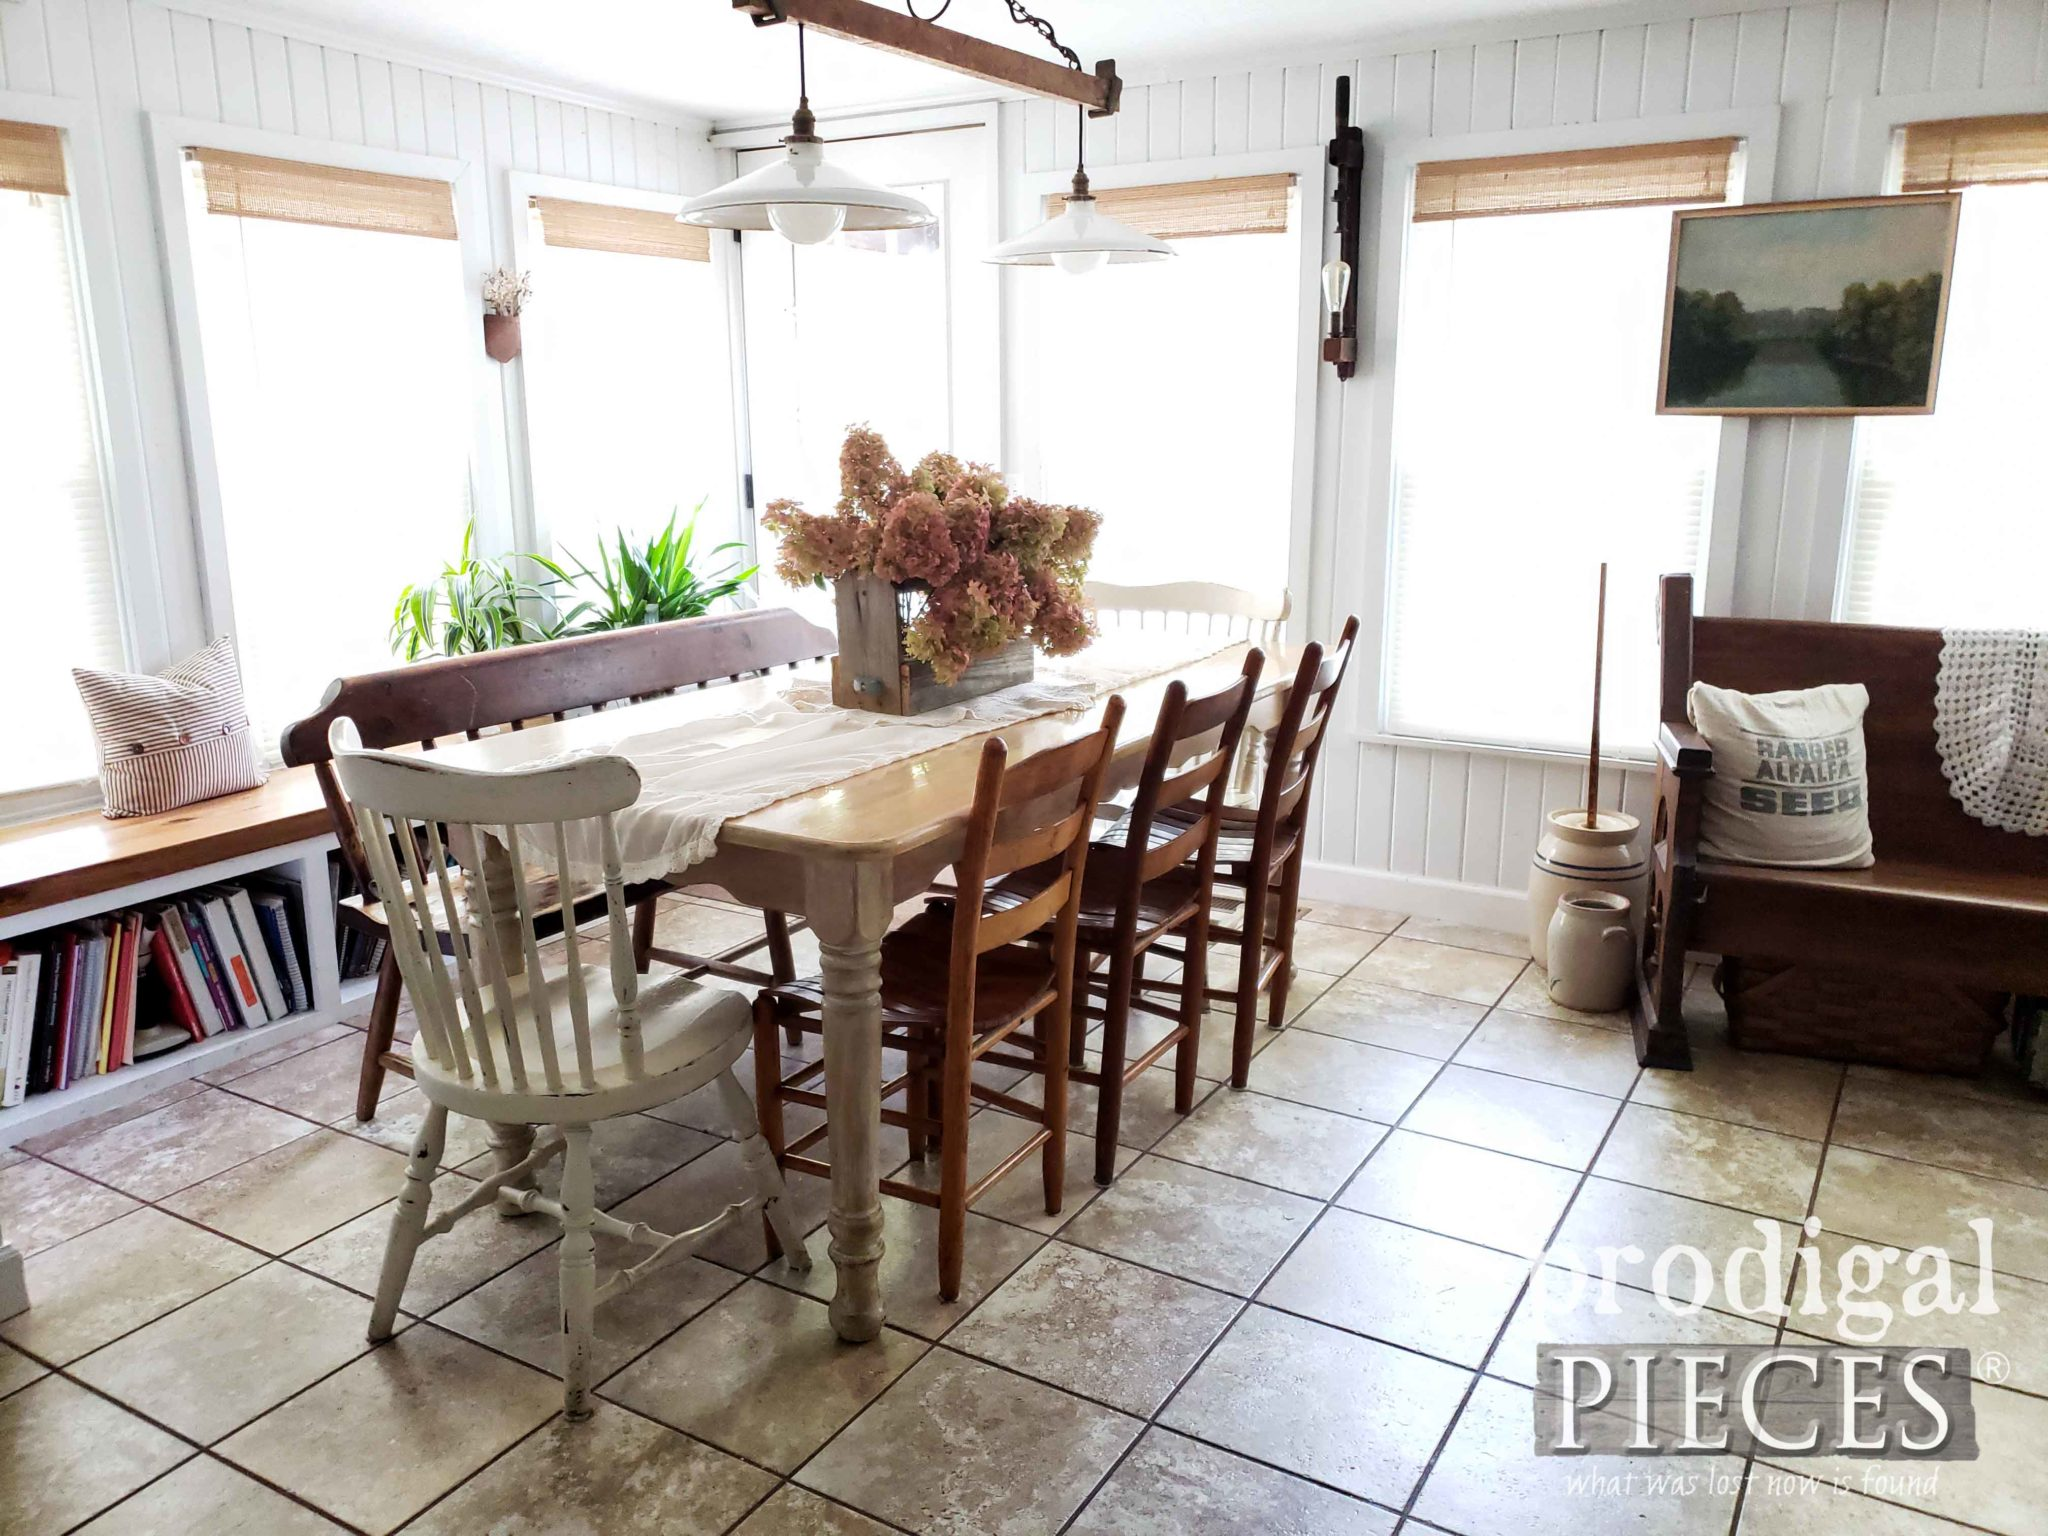 Dining Room in Farmhouse Style Home by Larissa of Prodigal Pieces | prodigalpieces.com